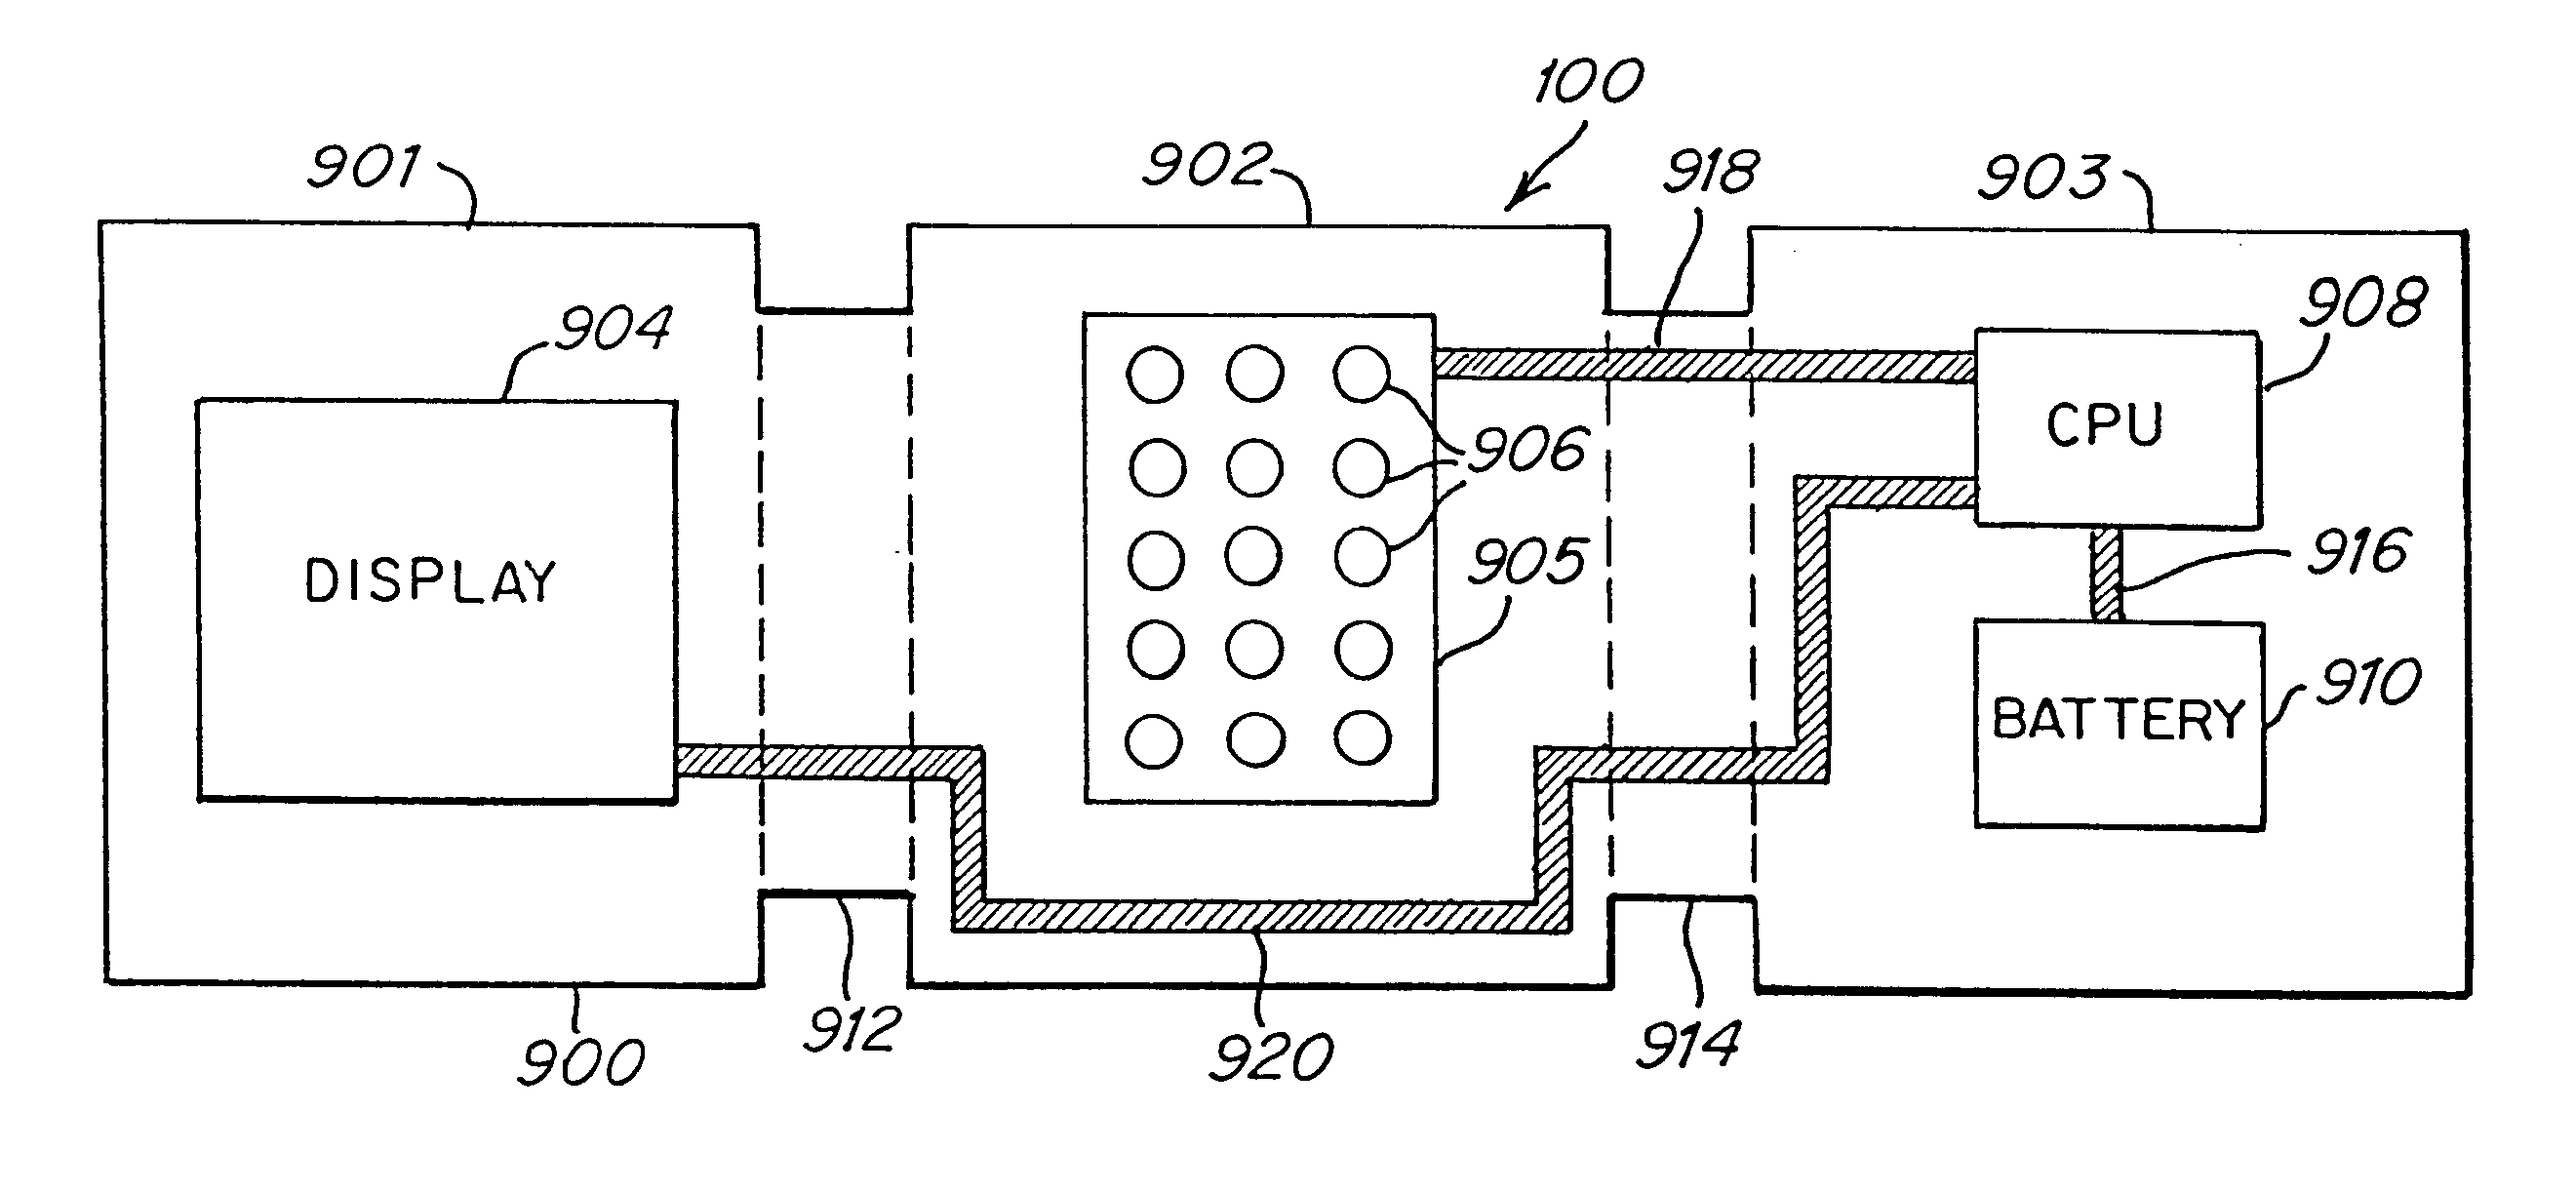 patent us6307751 - flexible circuit assembly